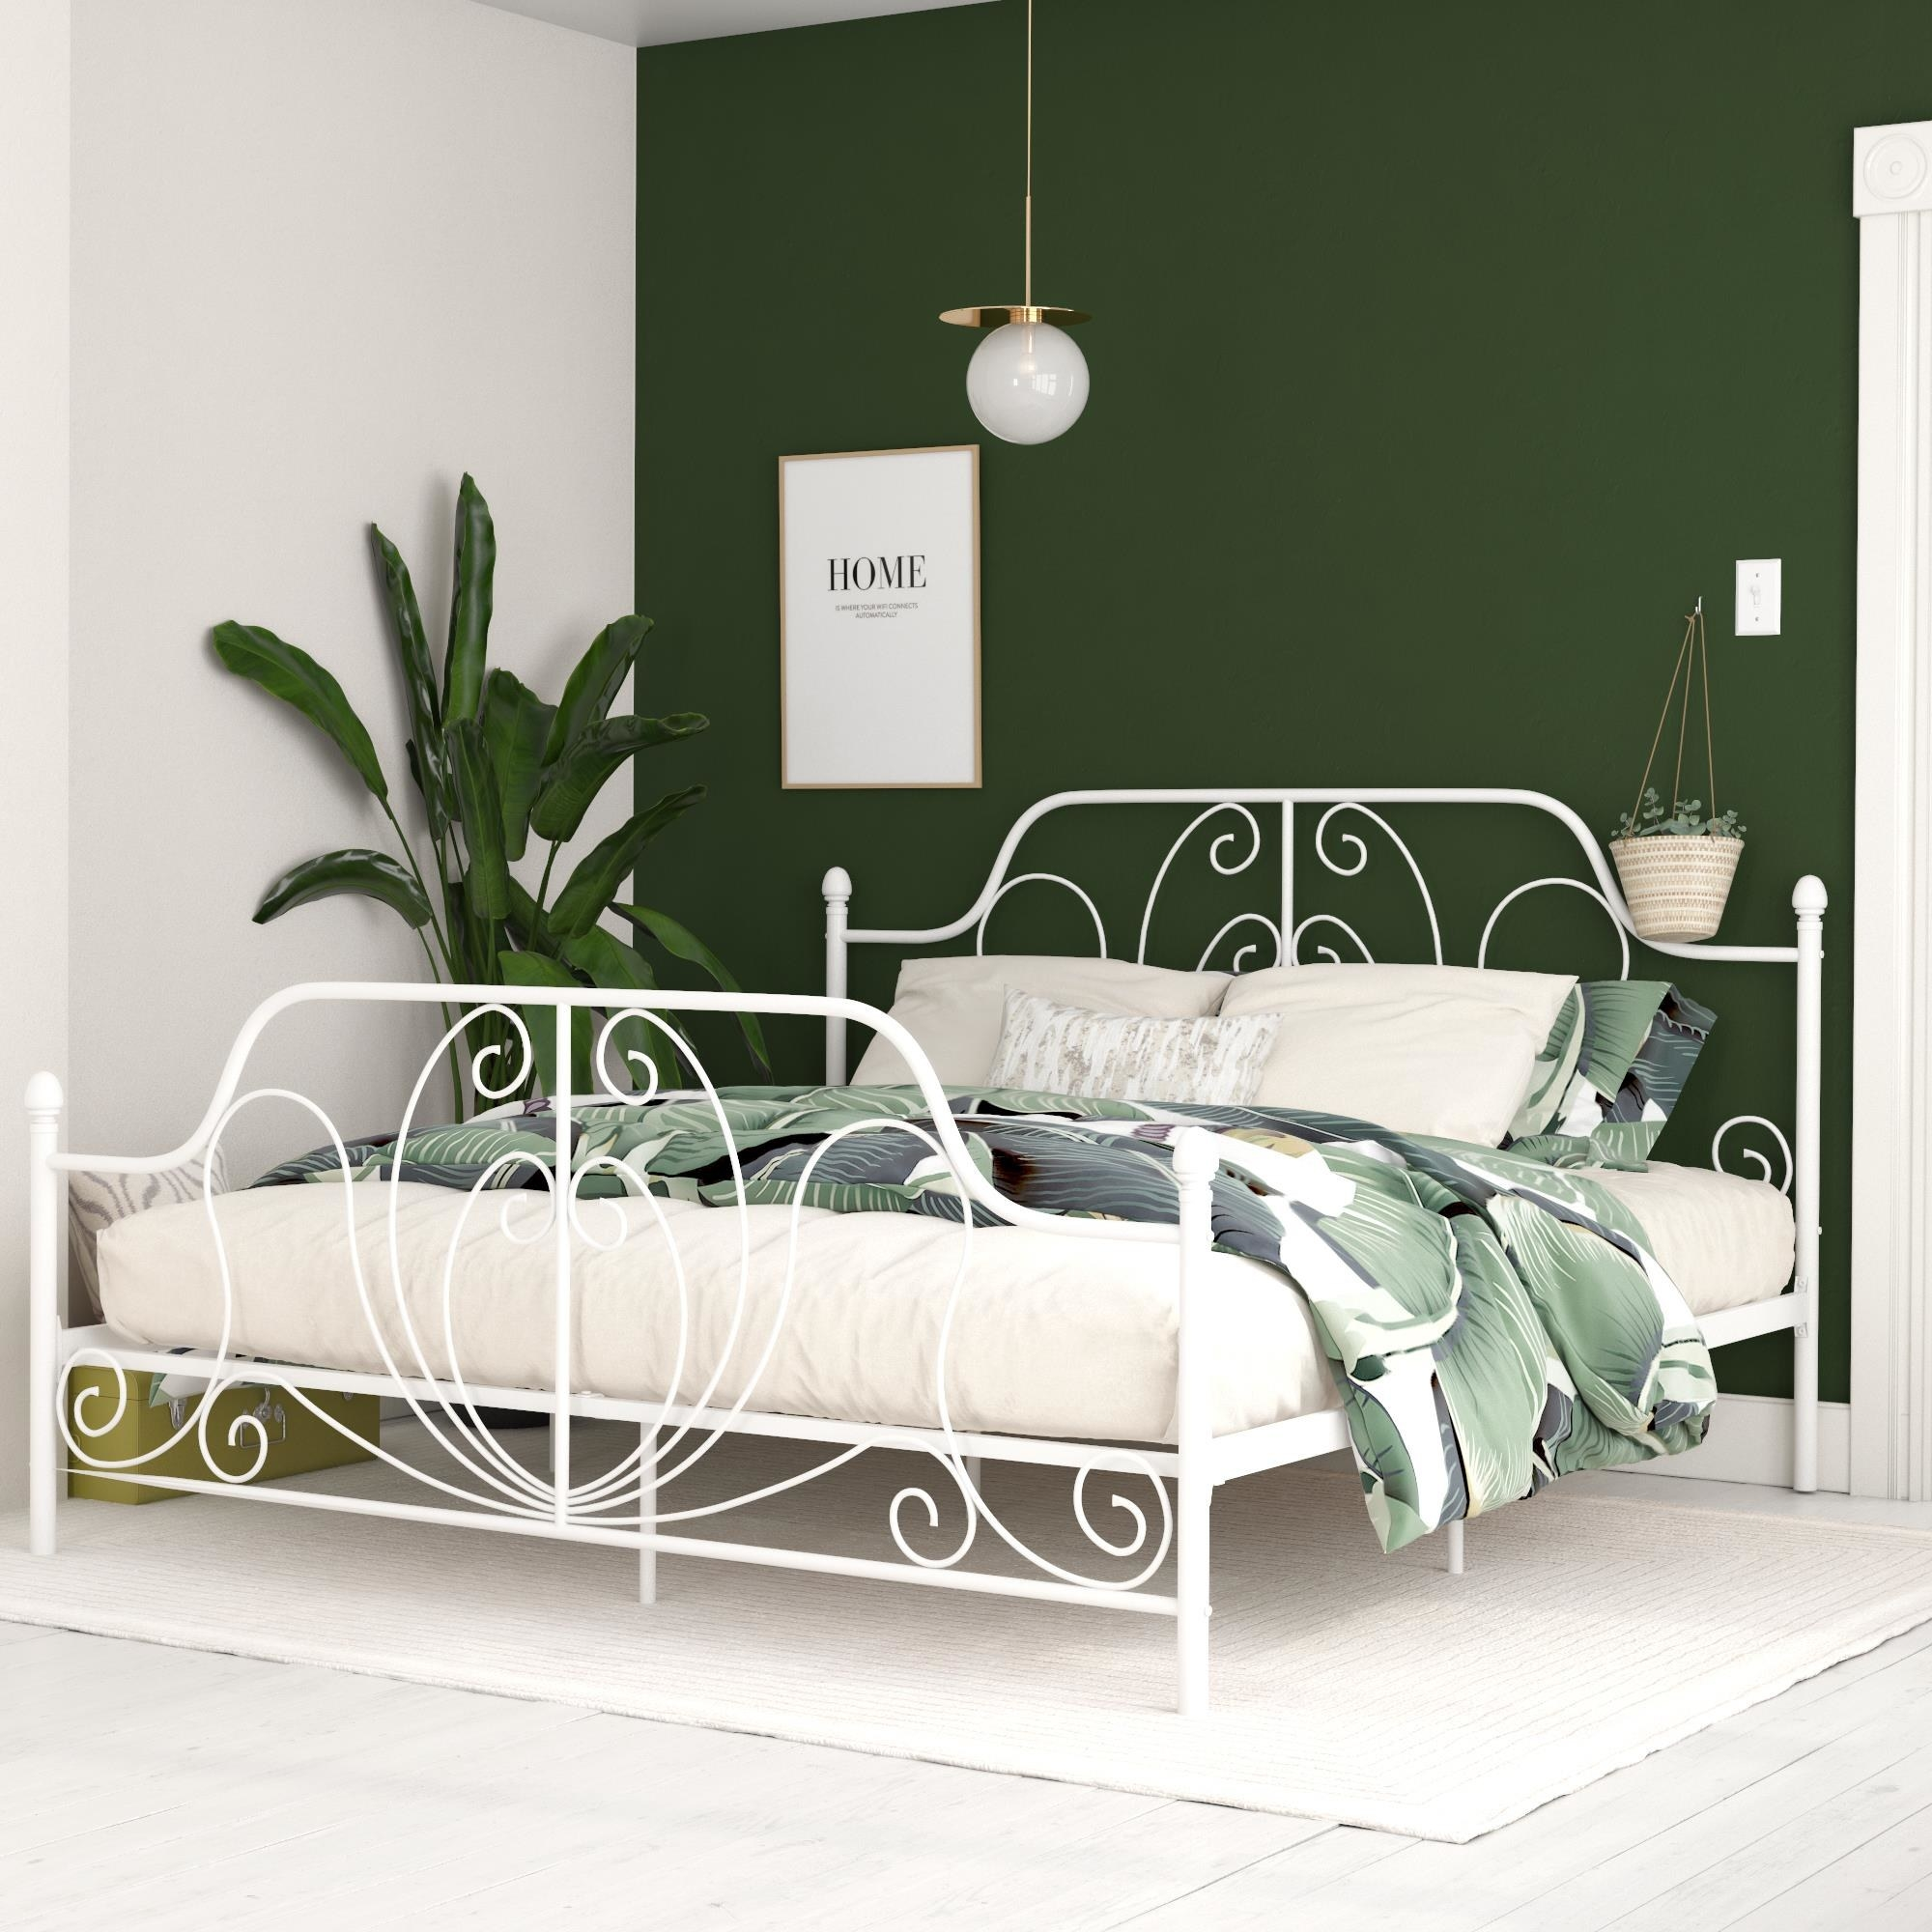 A white metal bed frame with four posts and an ornate design at the foot of the bed and the headboard